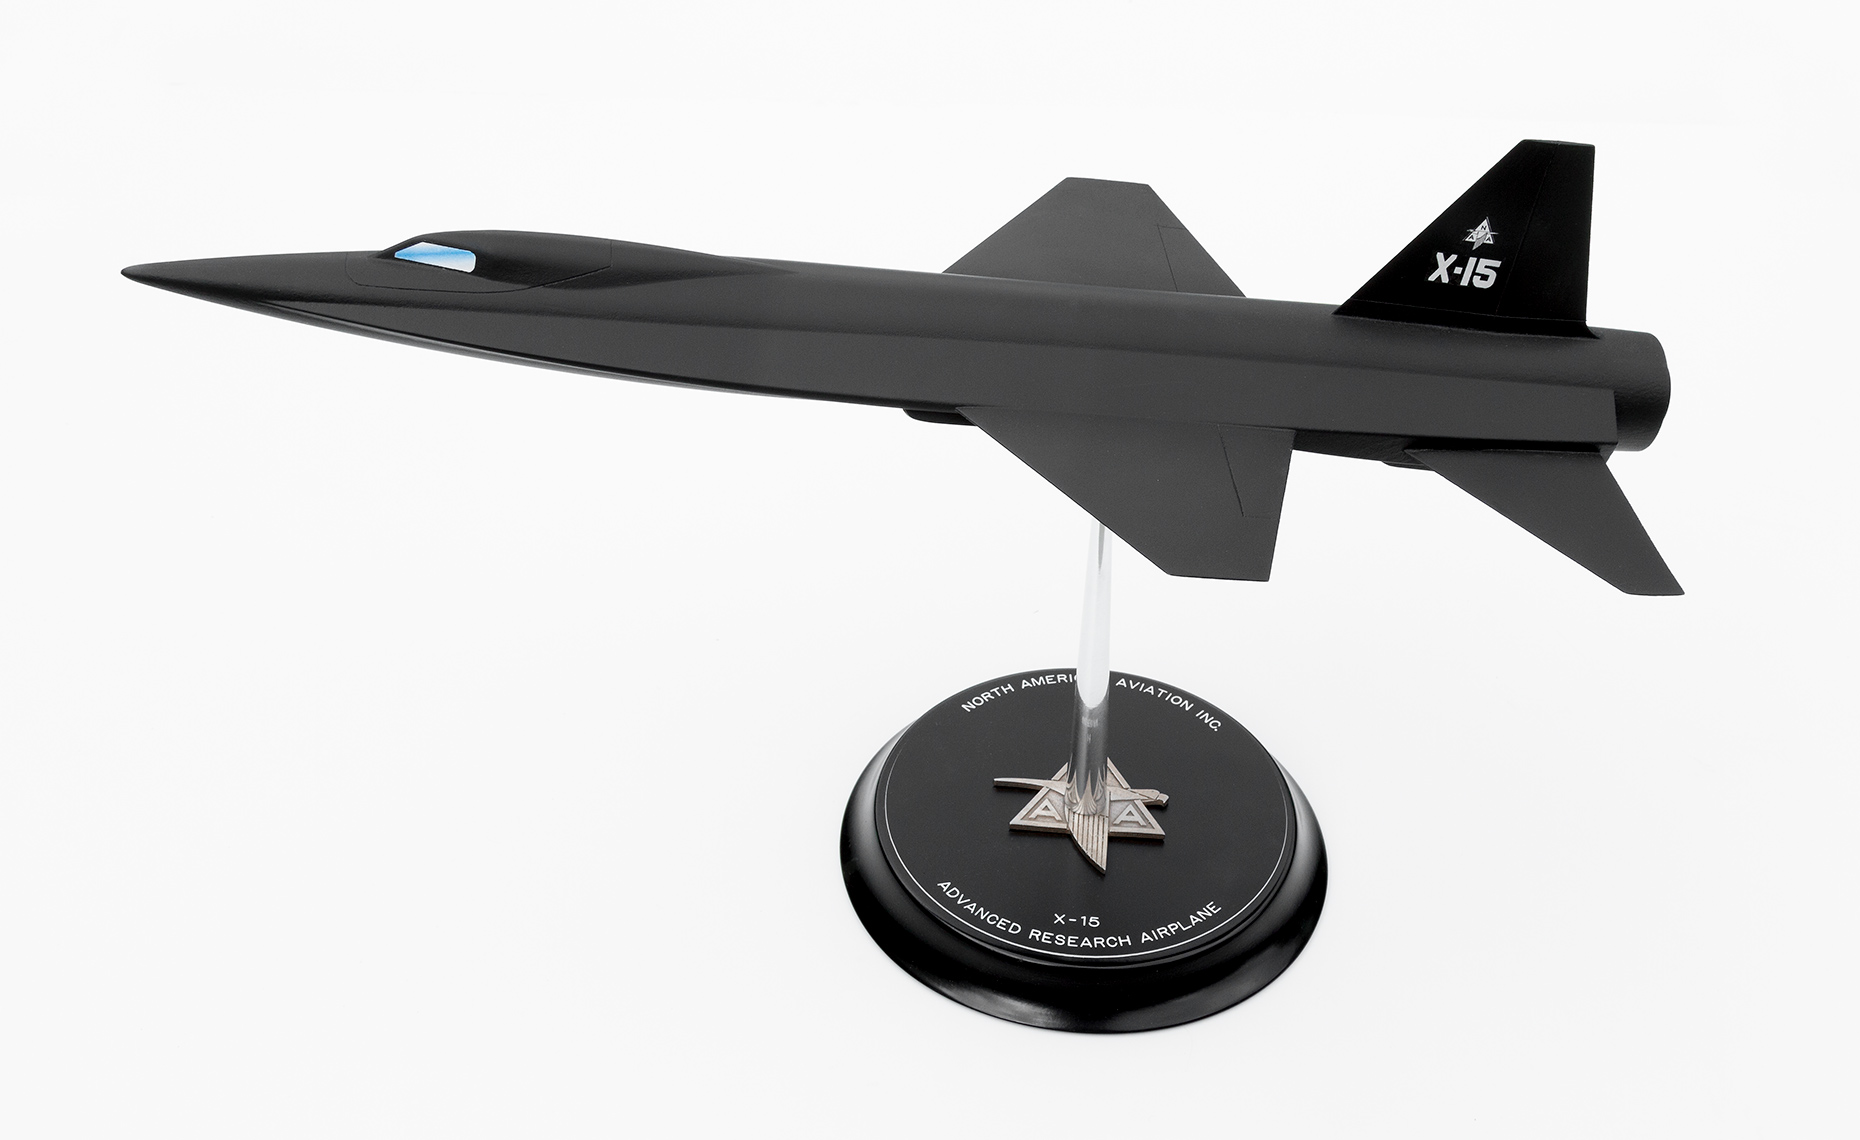 Replica of North American Aviation X-15 model proposal